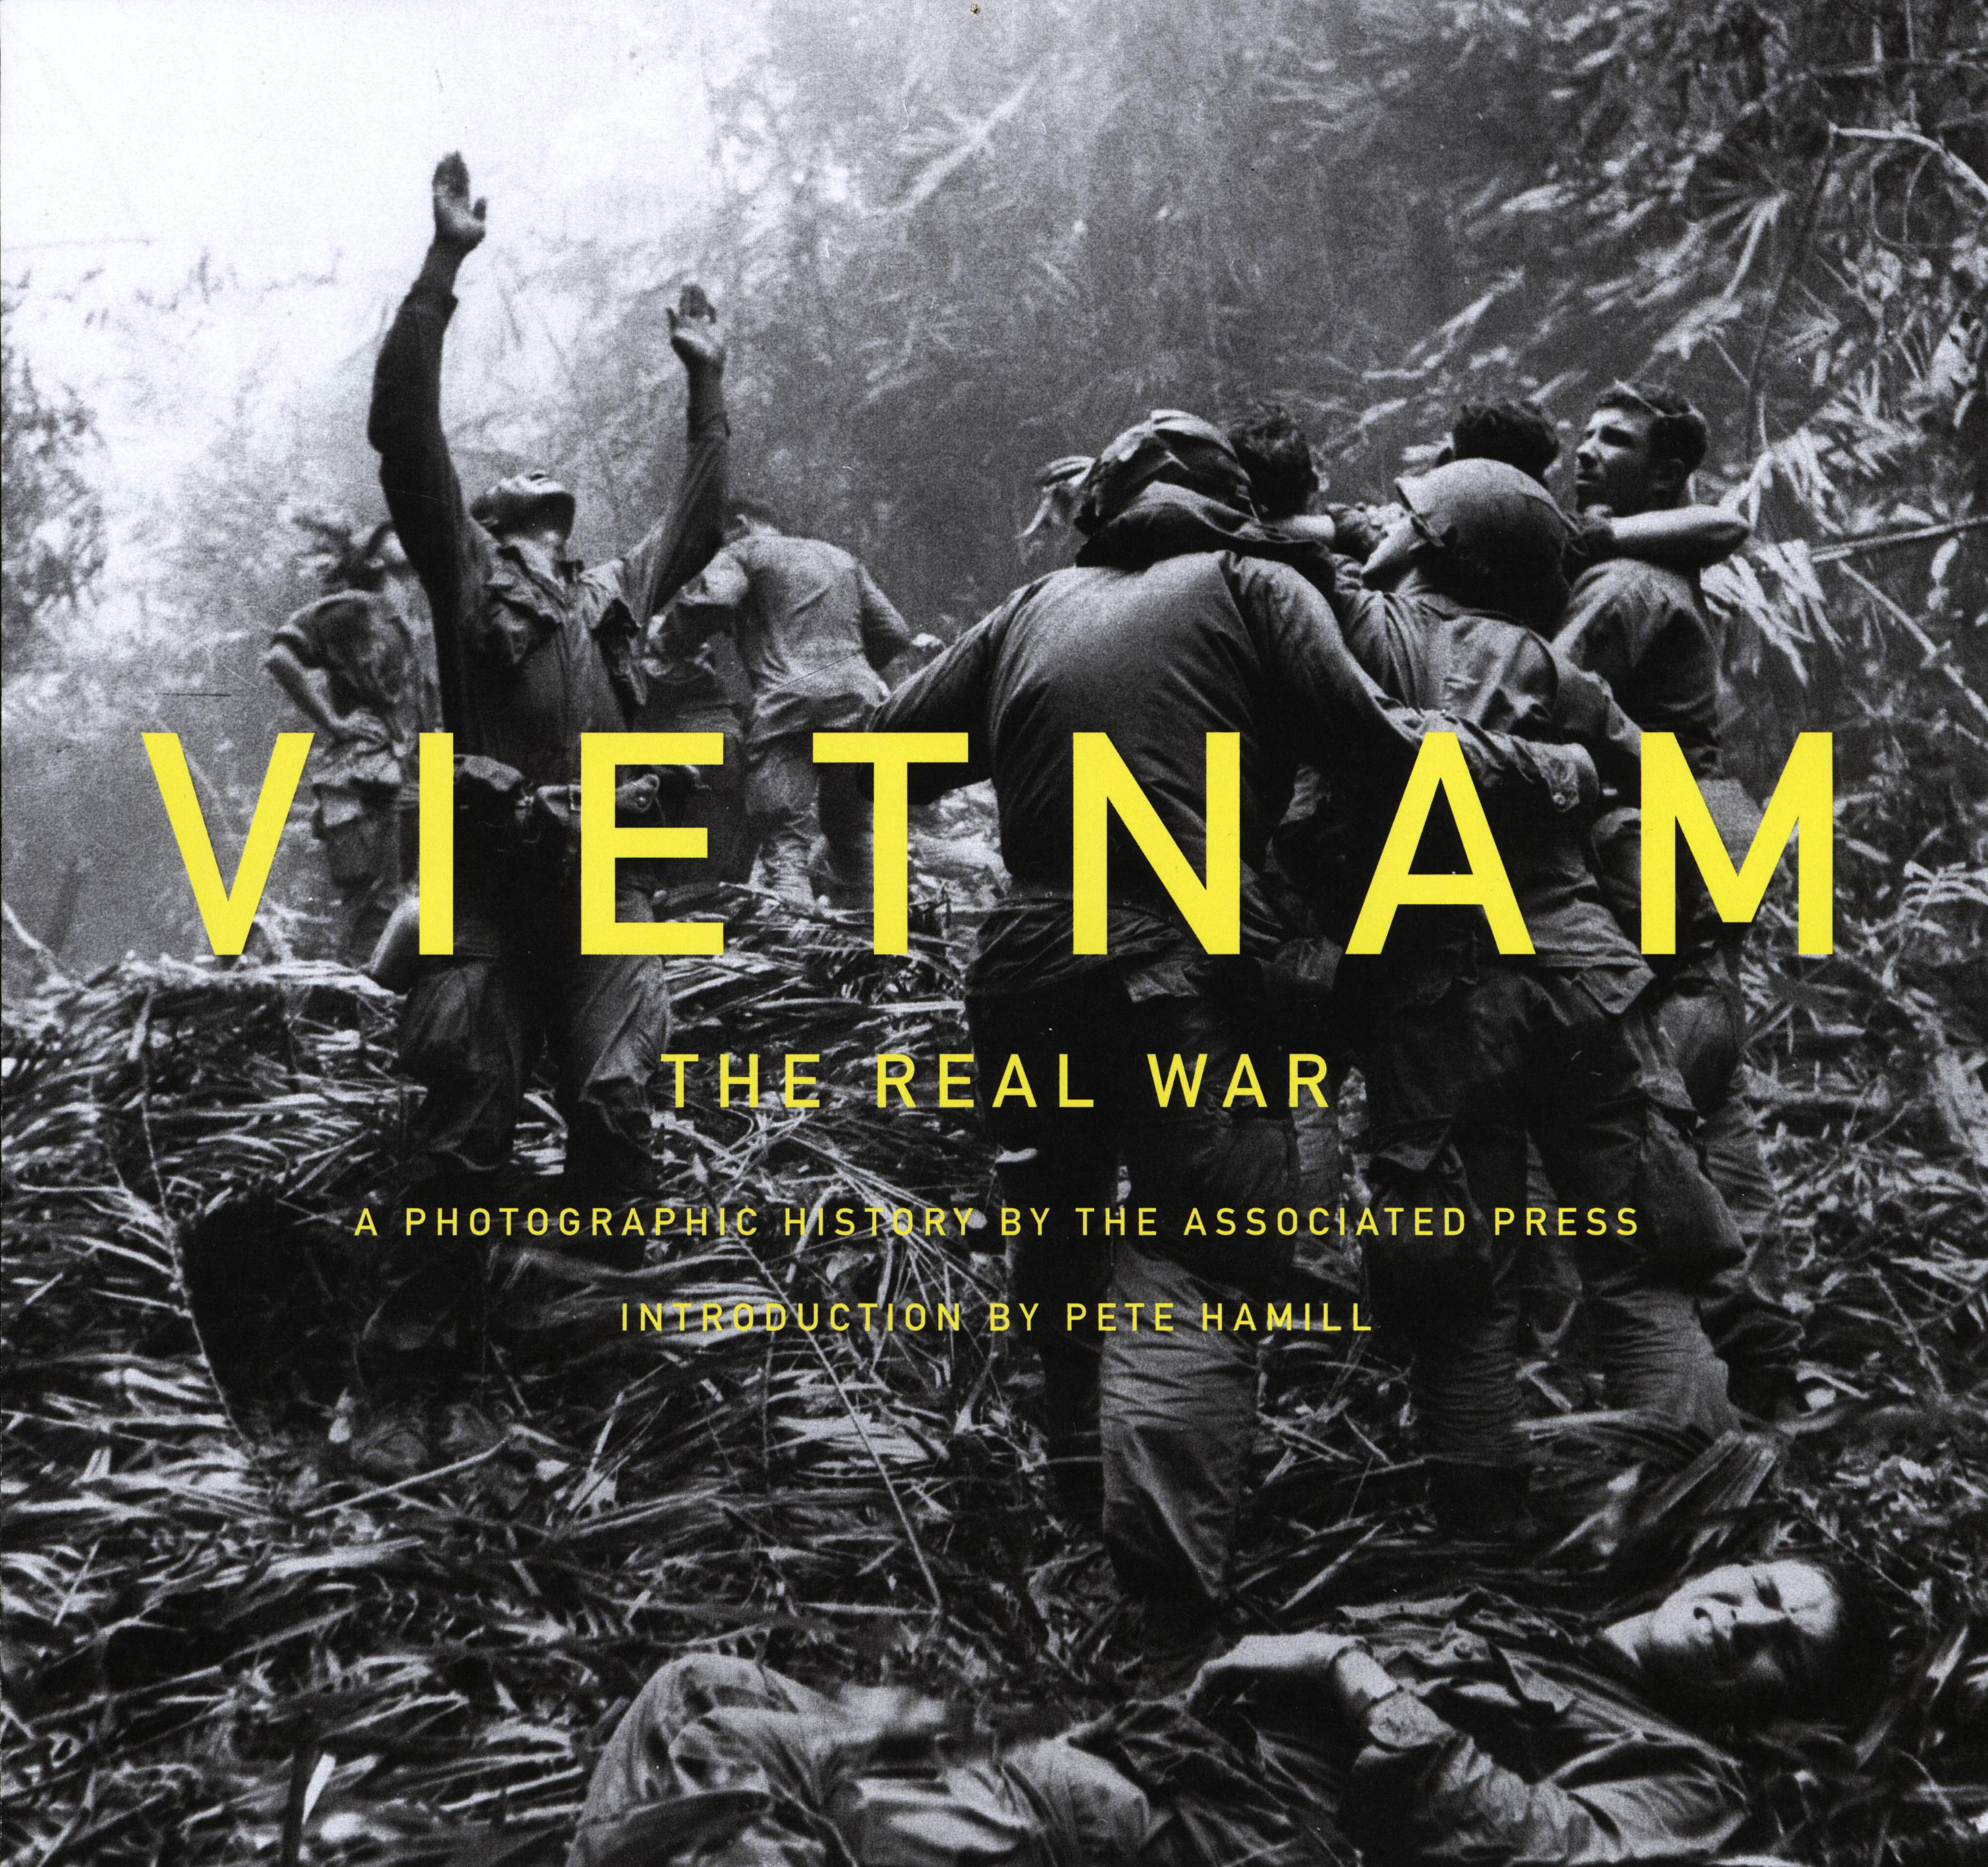 """Vietnam: The Real War"" (Abrams; Oct. 1, 2013; 304 pages; 300 photographs; US $40.00/CAN $45.00/UK £25)"